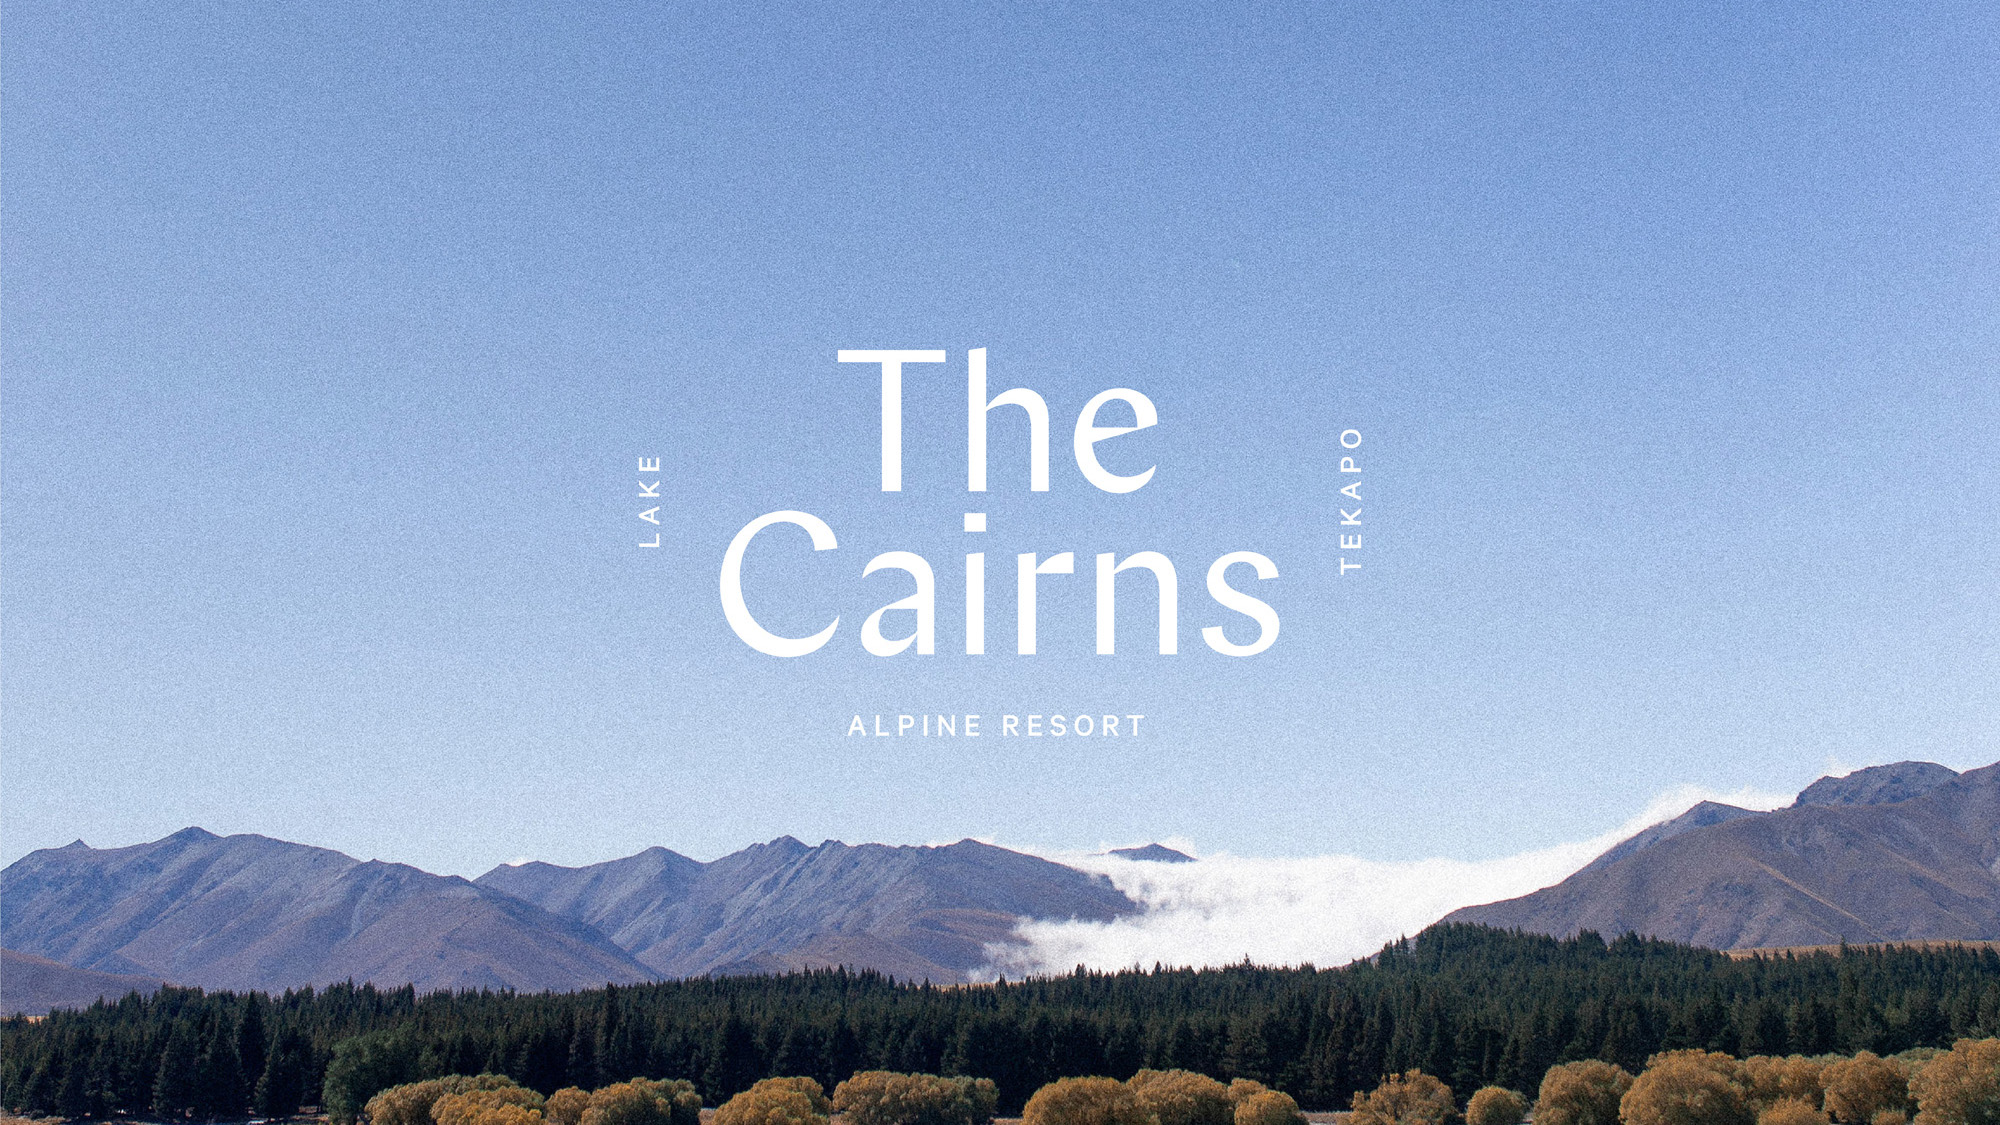 The Cairns Alpine Resort